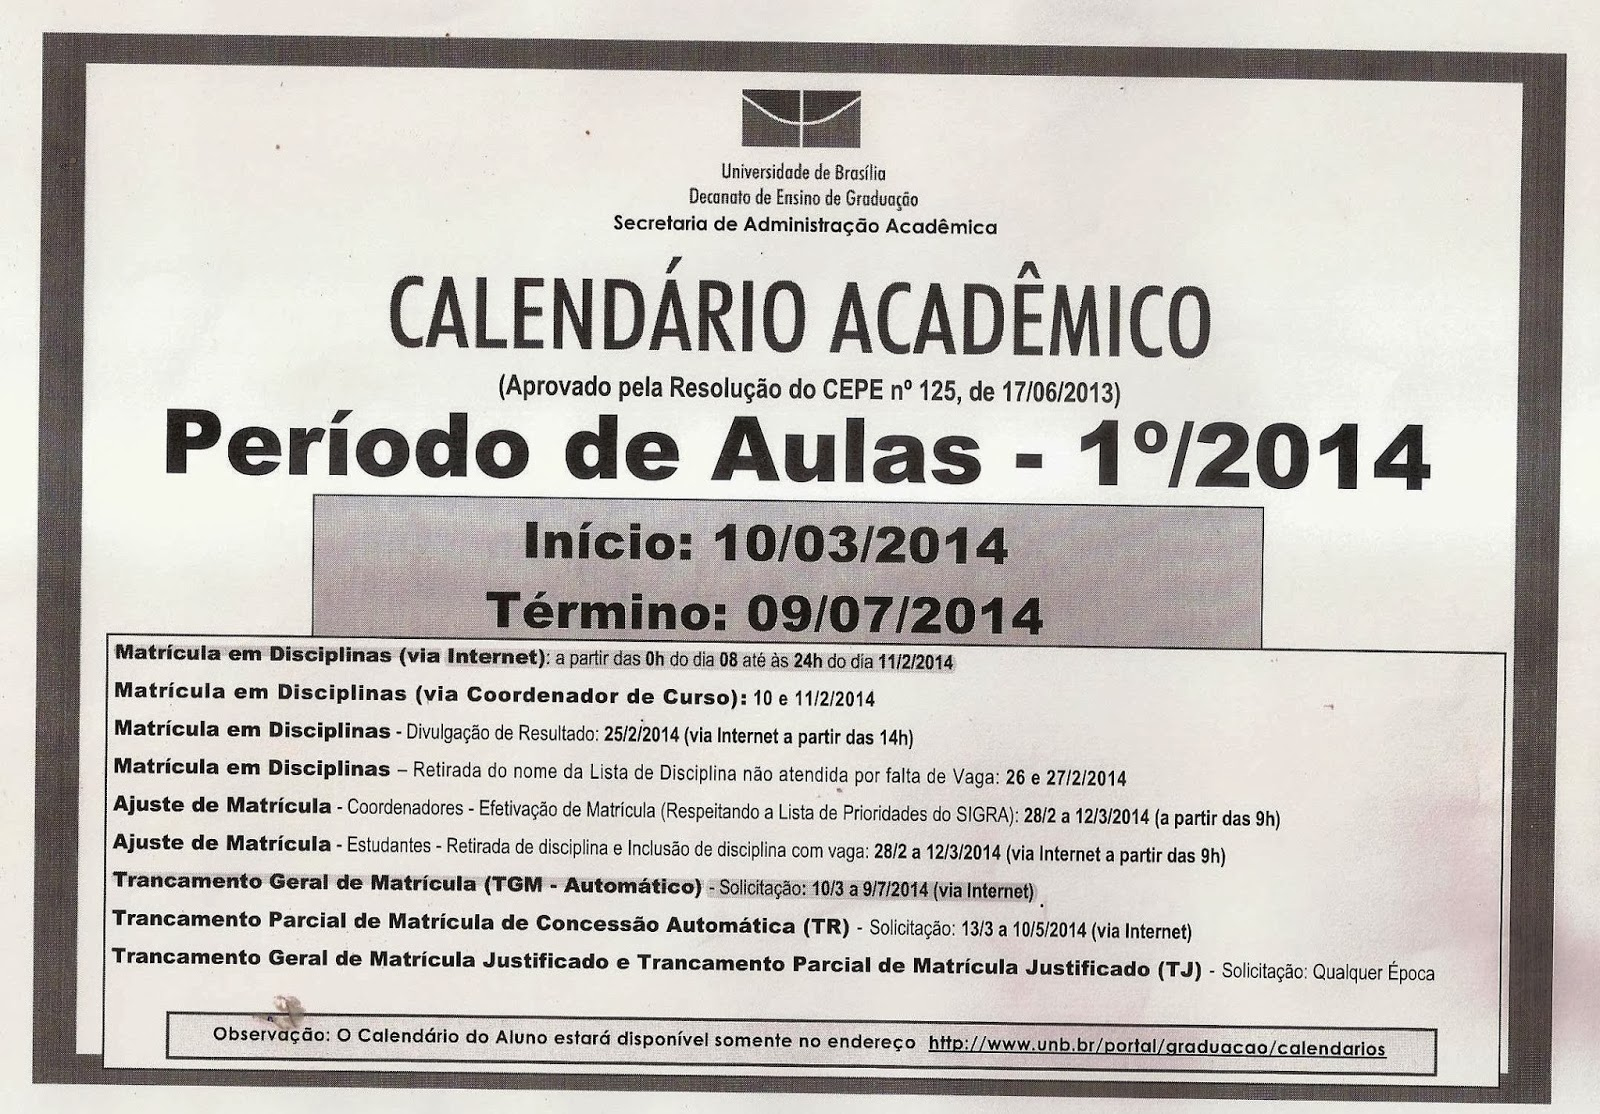 Calendario Uab.Polo Barretos Uab Calendario Academico Unb